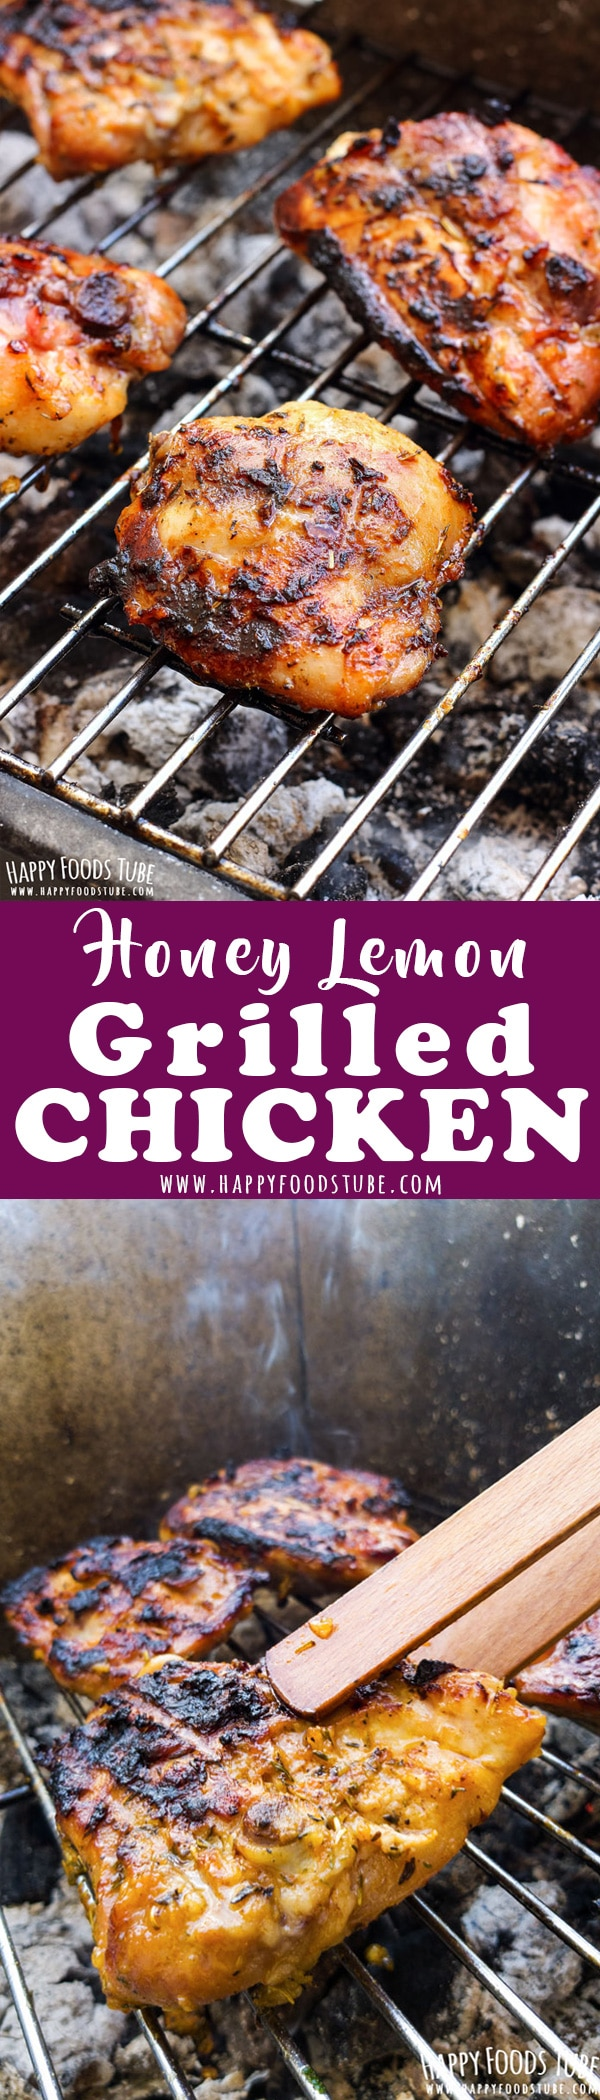 Easy honey lemon grilled chicken recipe. Chicken thighs are flavored with homemade grill seasoning, marinated in honey, lemon and garlic then grilled to perfection. How to make honey grilled chicken